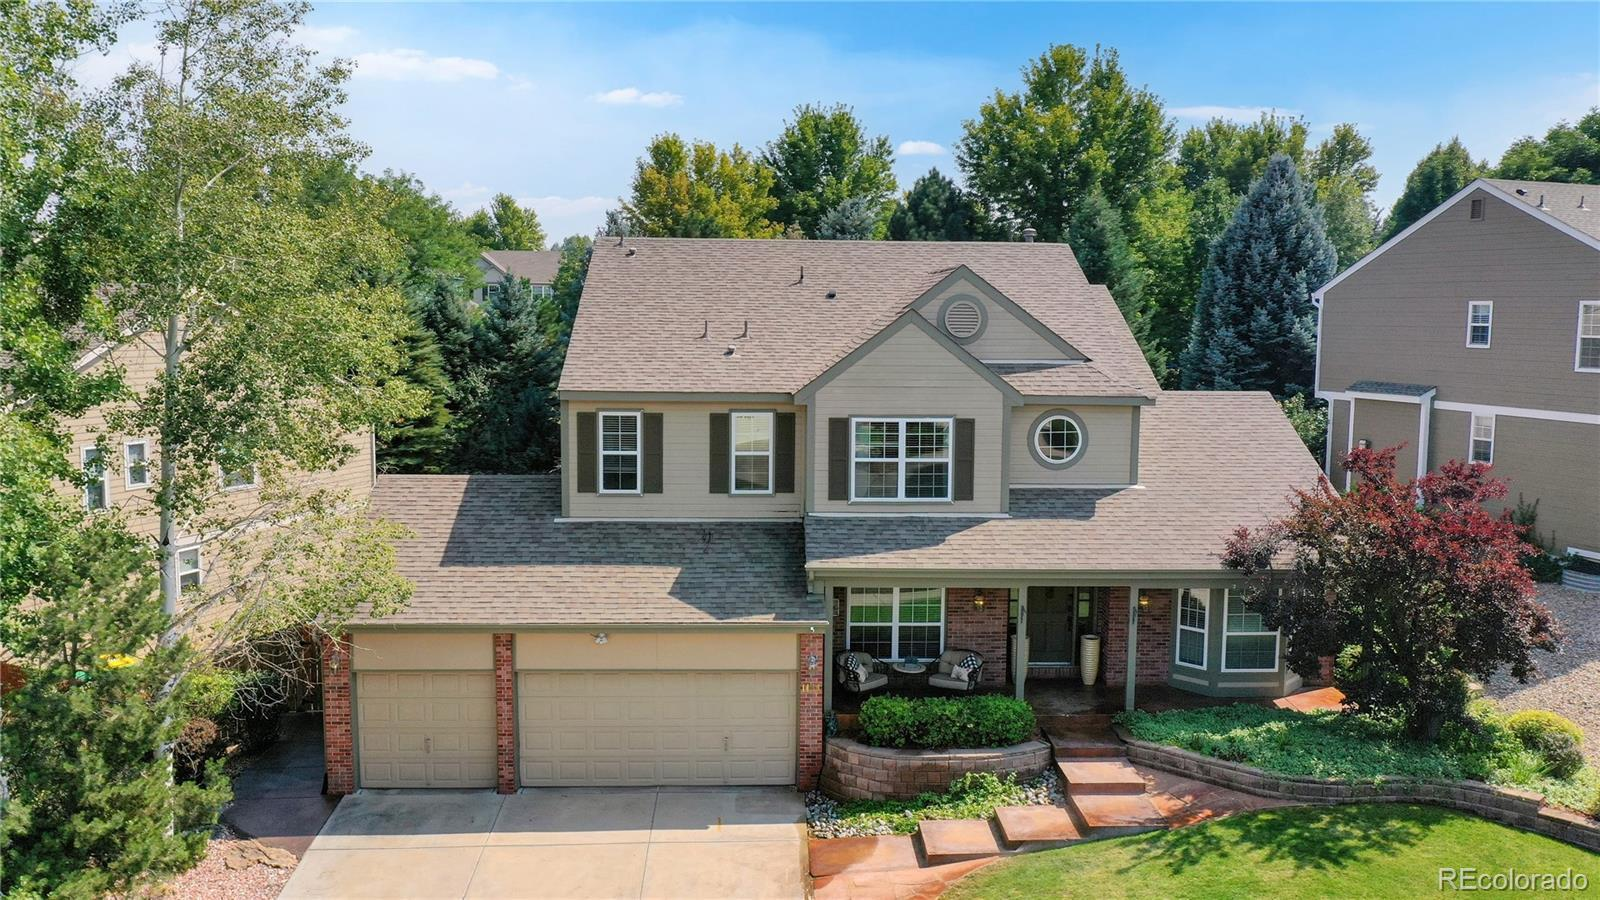 1134 W 125th Drive, Westminster, CO 80234 - #: 8162528